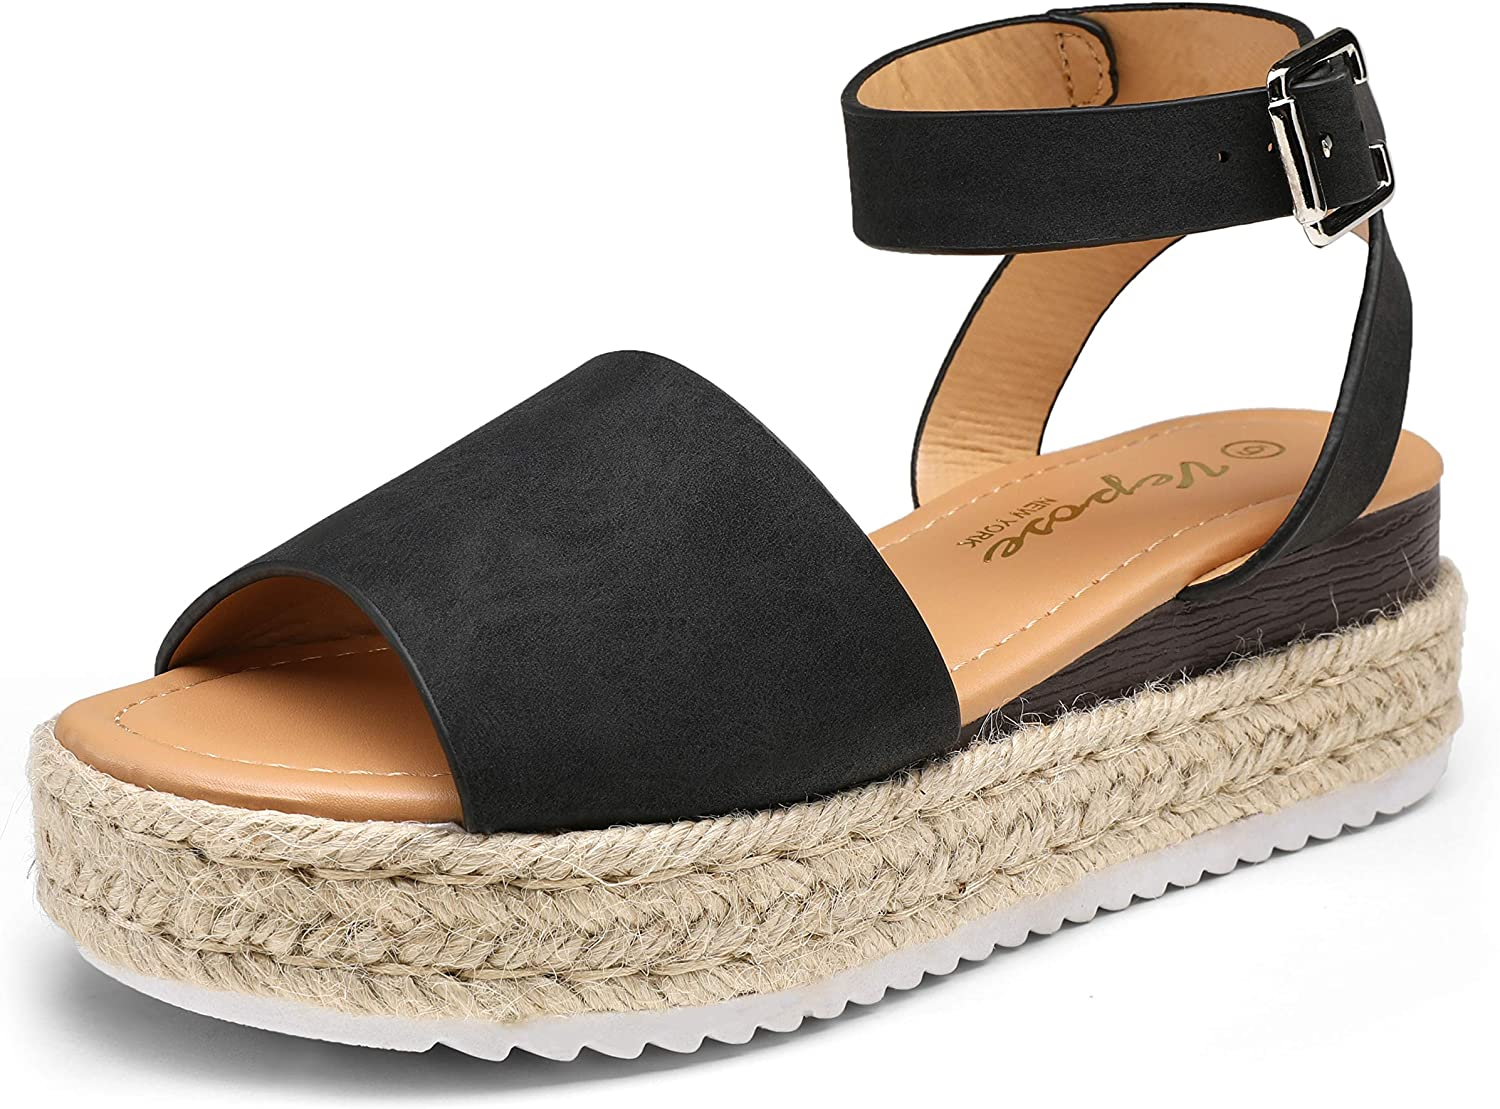 Vepose Women's 00A Espadrilles Sandals Summer S National products Platform Classic Max 59% OFF